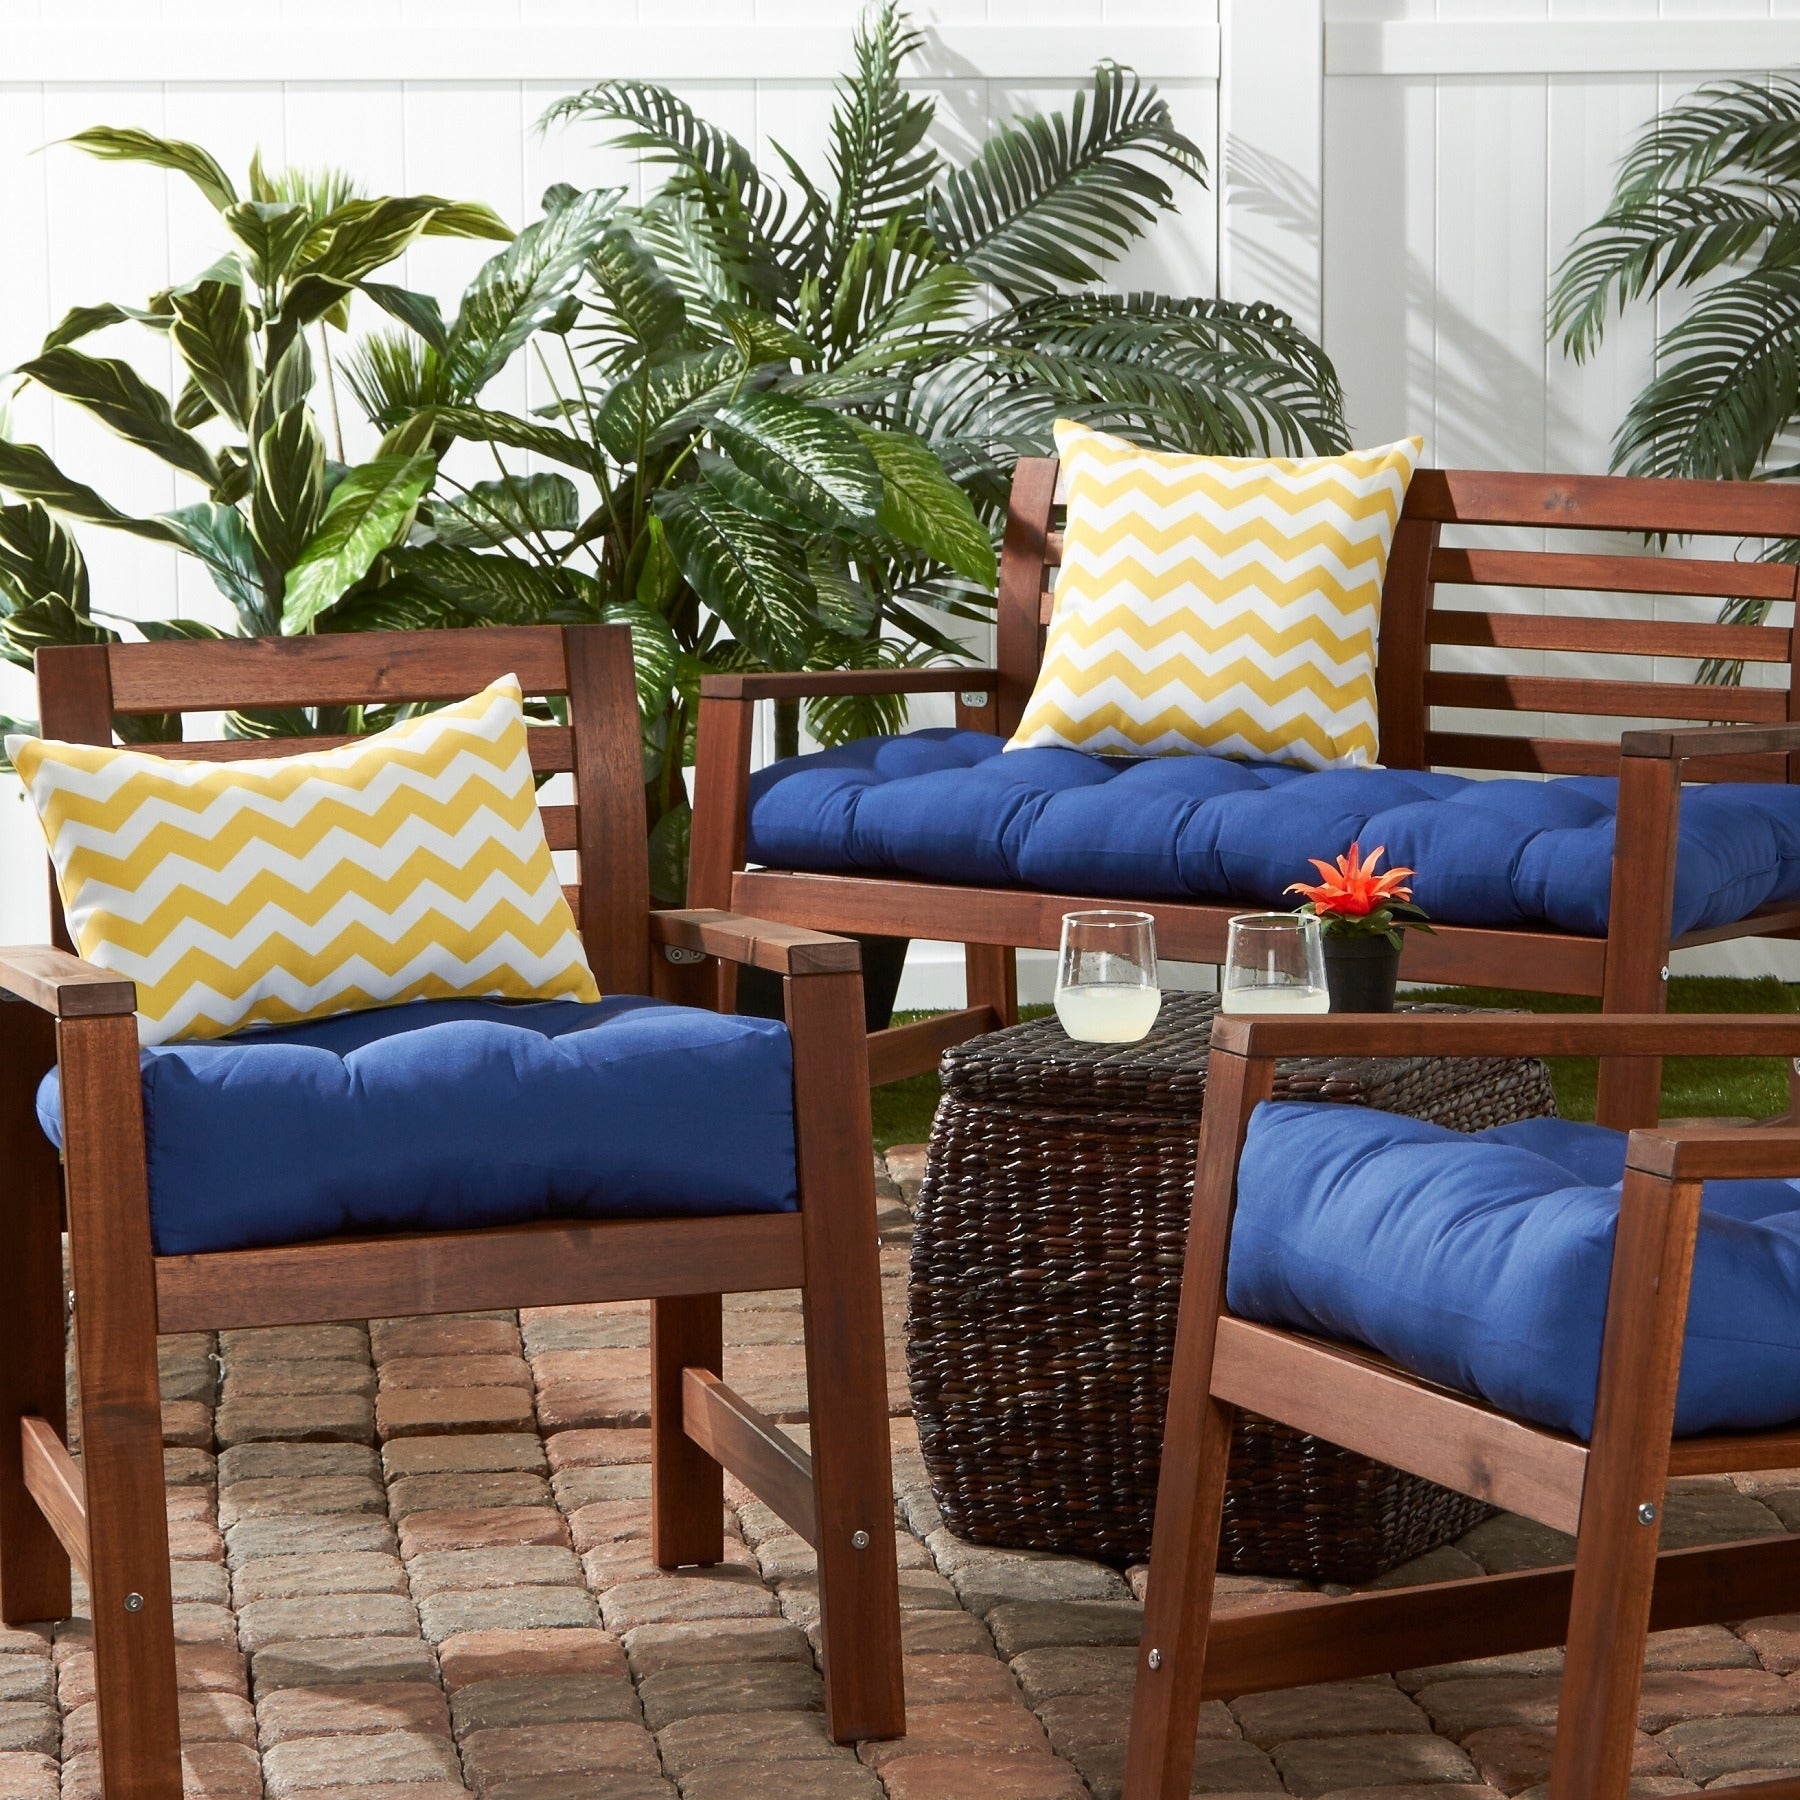 20 inch Outdoor Chair Cushion Set of 2 Free Shipping Today